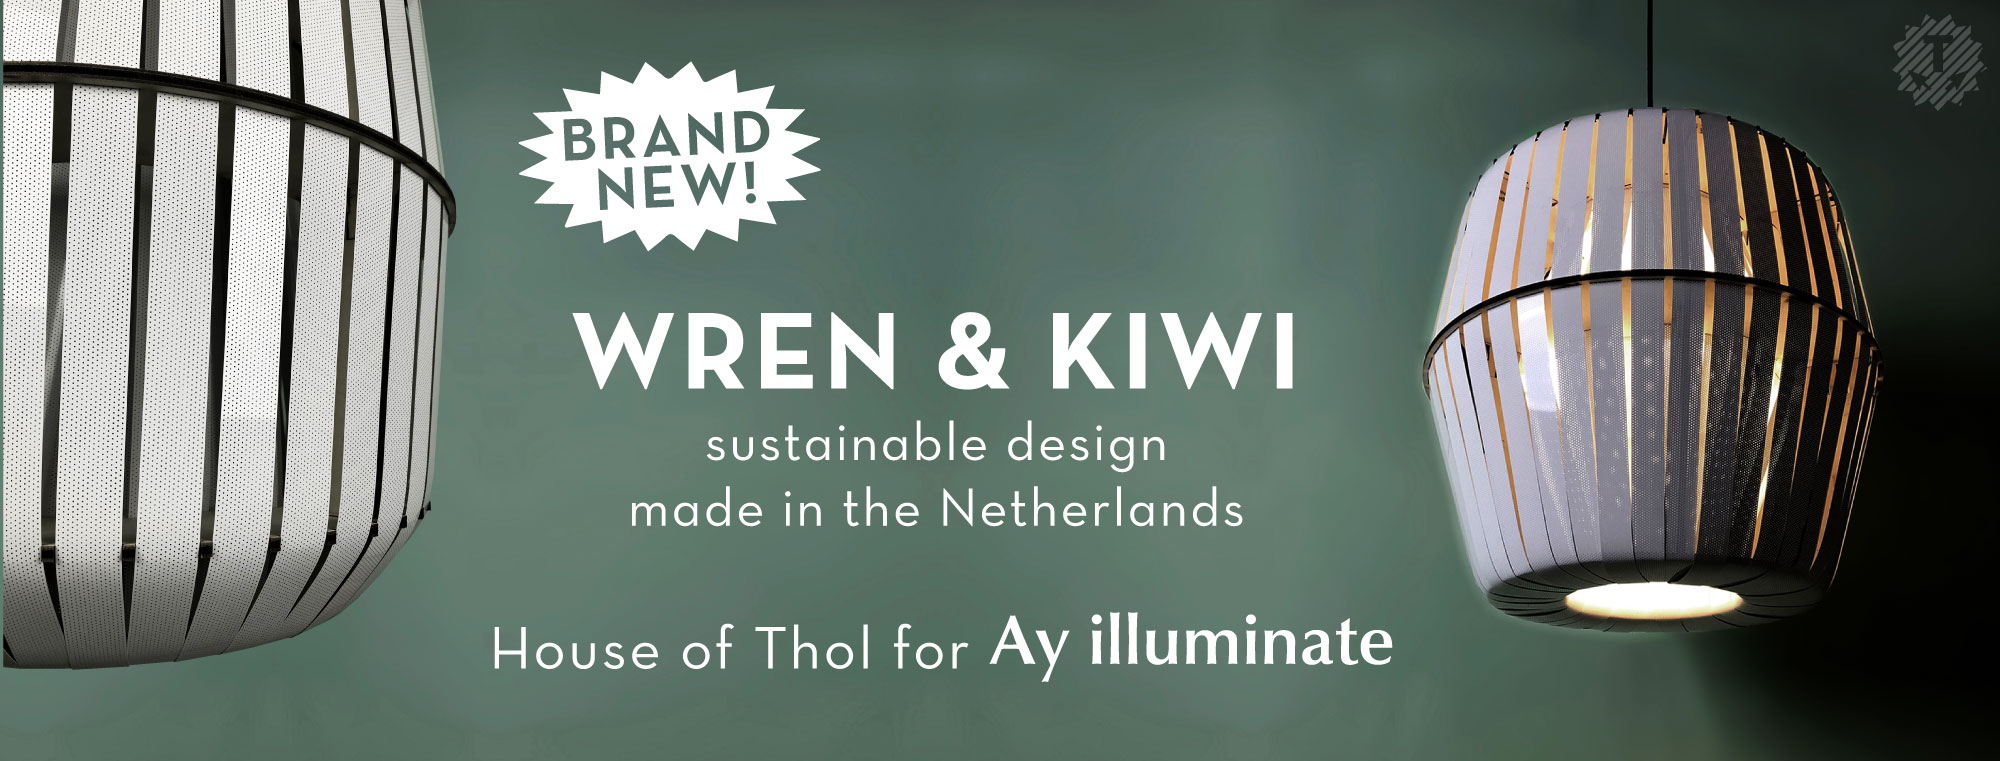 Brand New | WREN & KIWI | sustainable design made in the Netherlands | House of Thol for Ay Illuminate